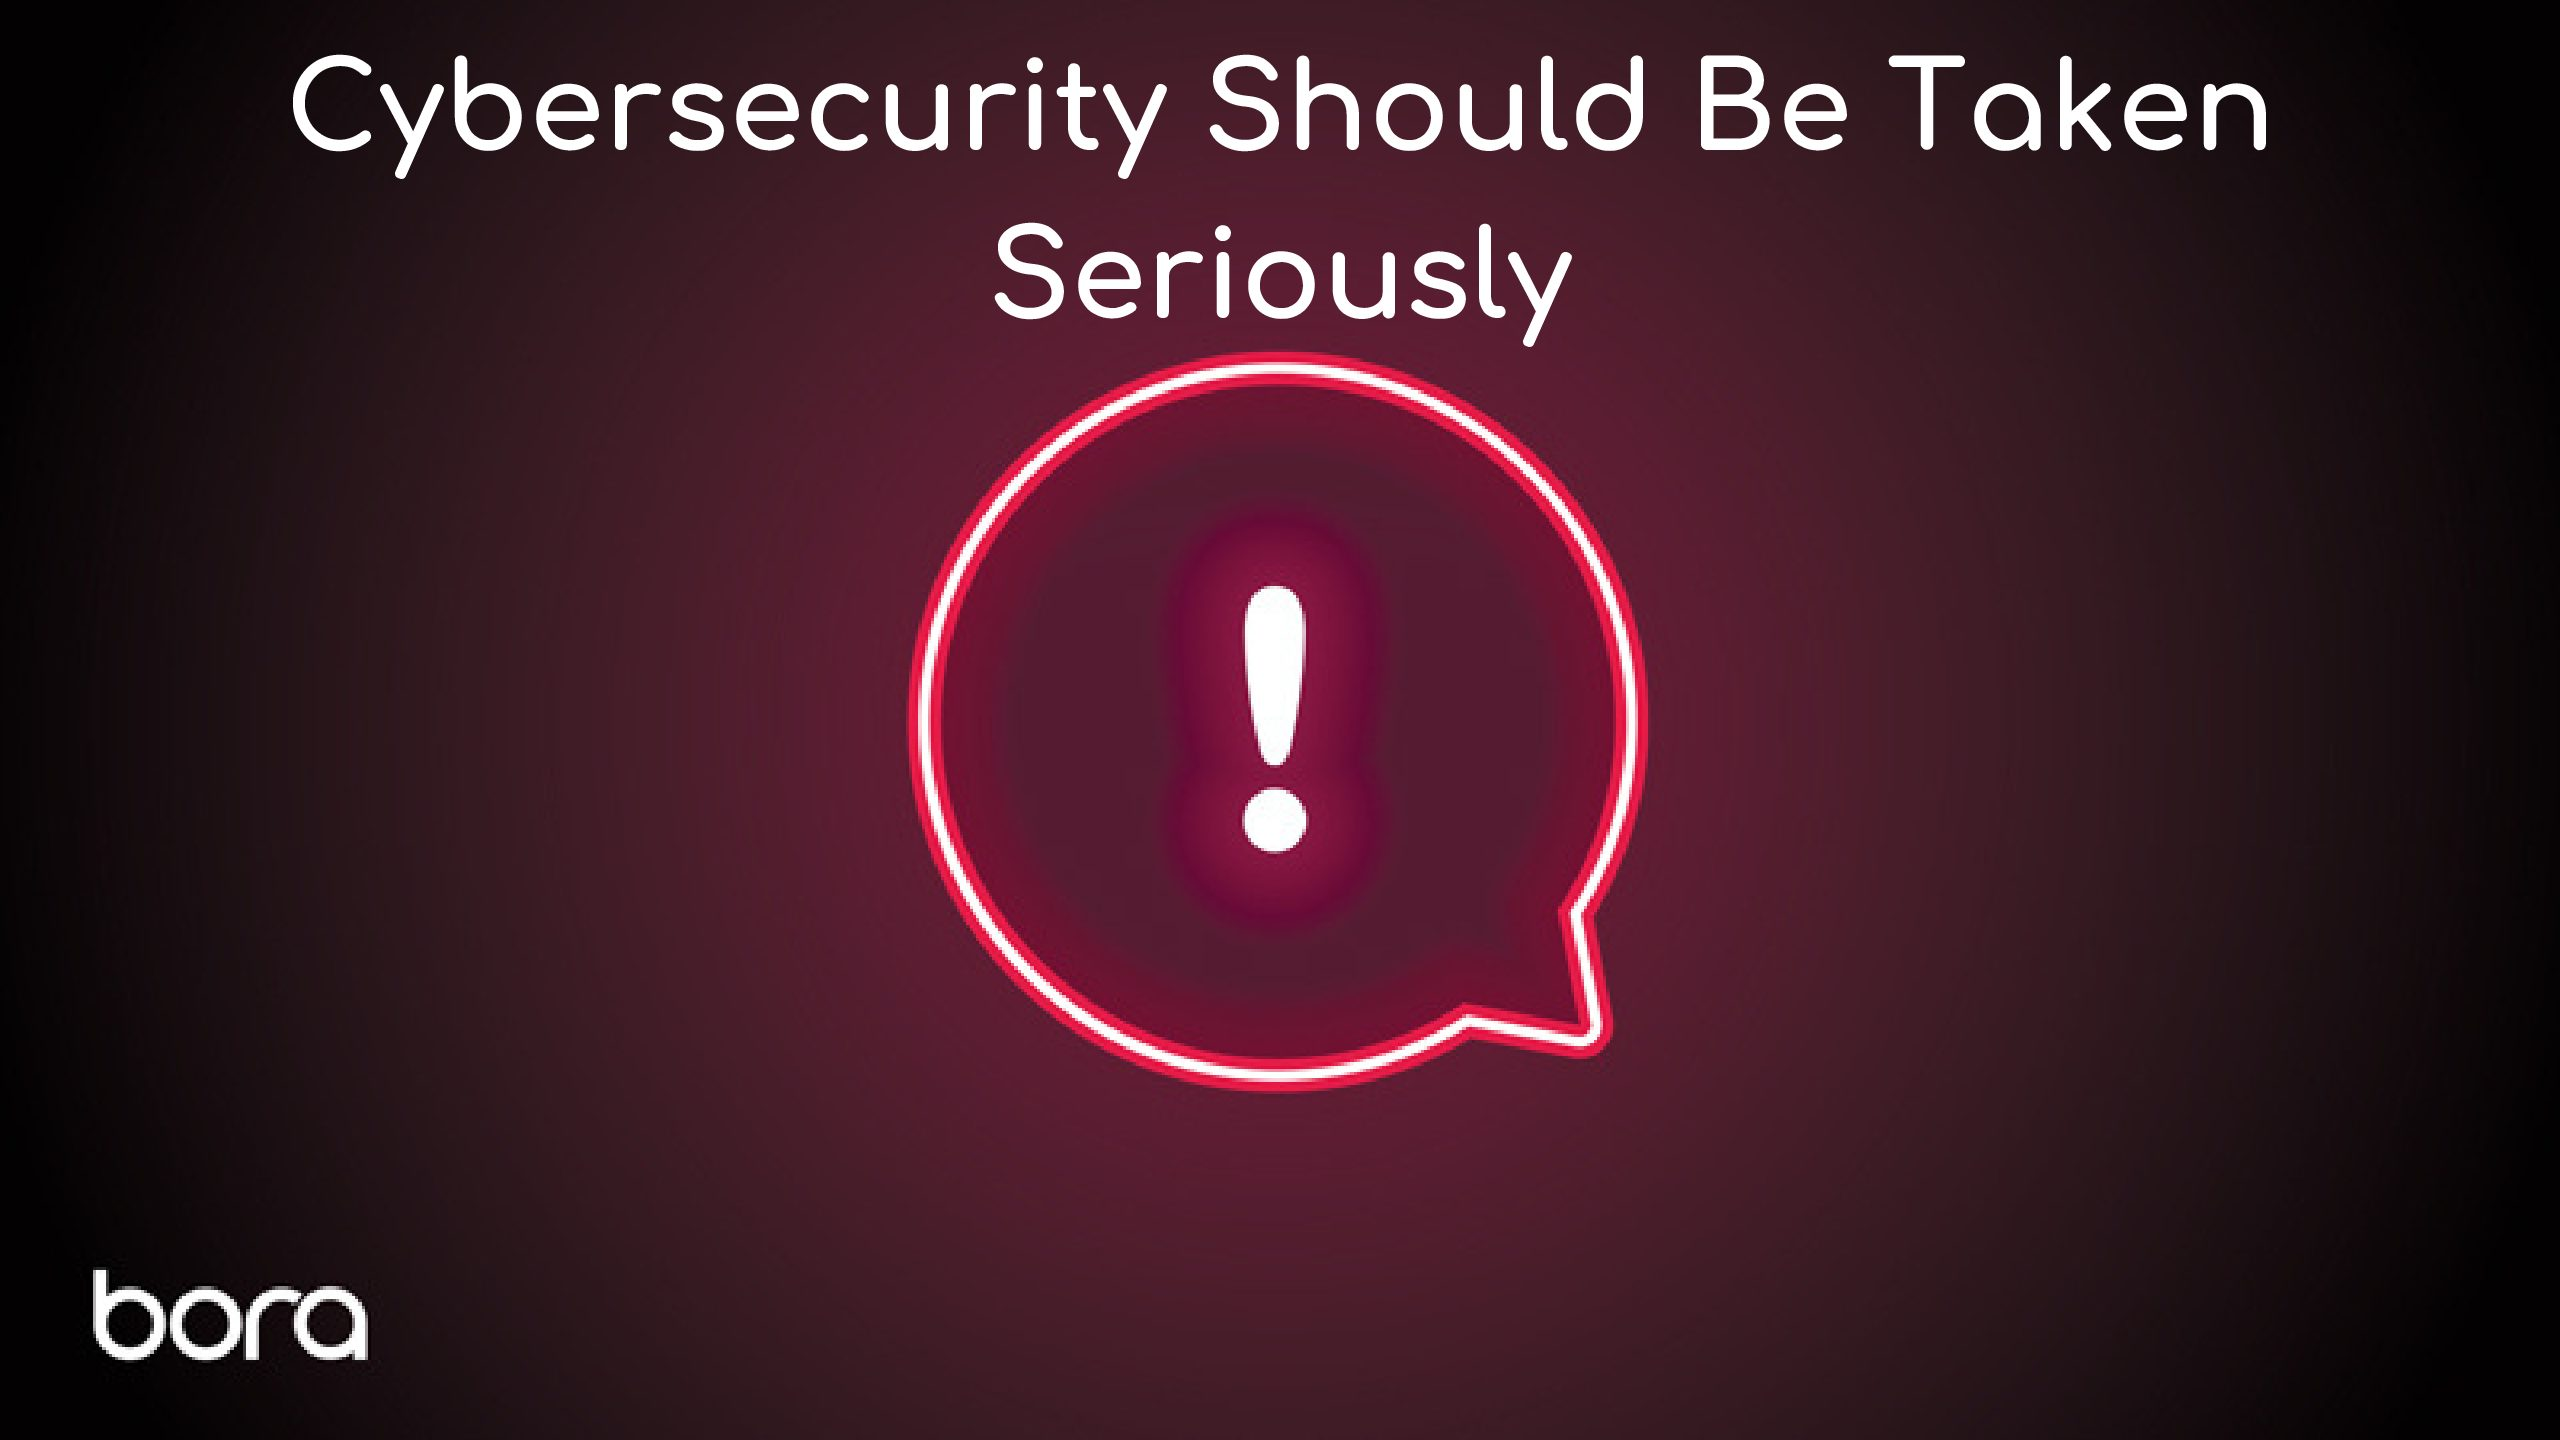 Cybersecurity Should Be Taken Seriously